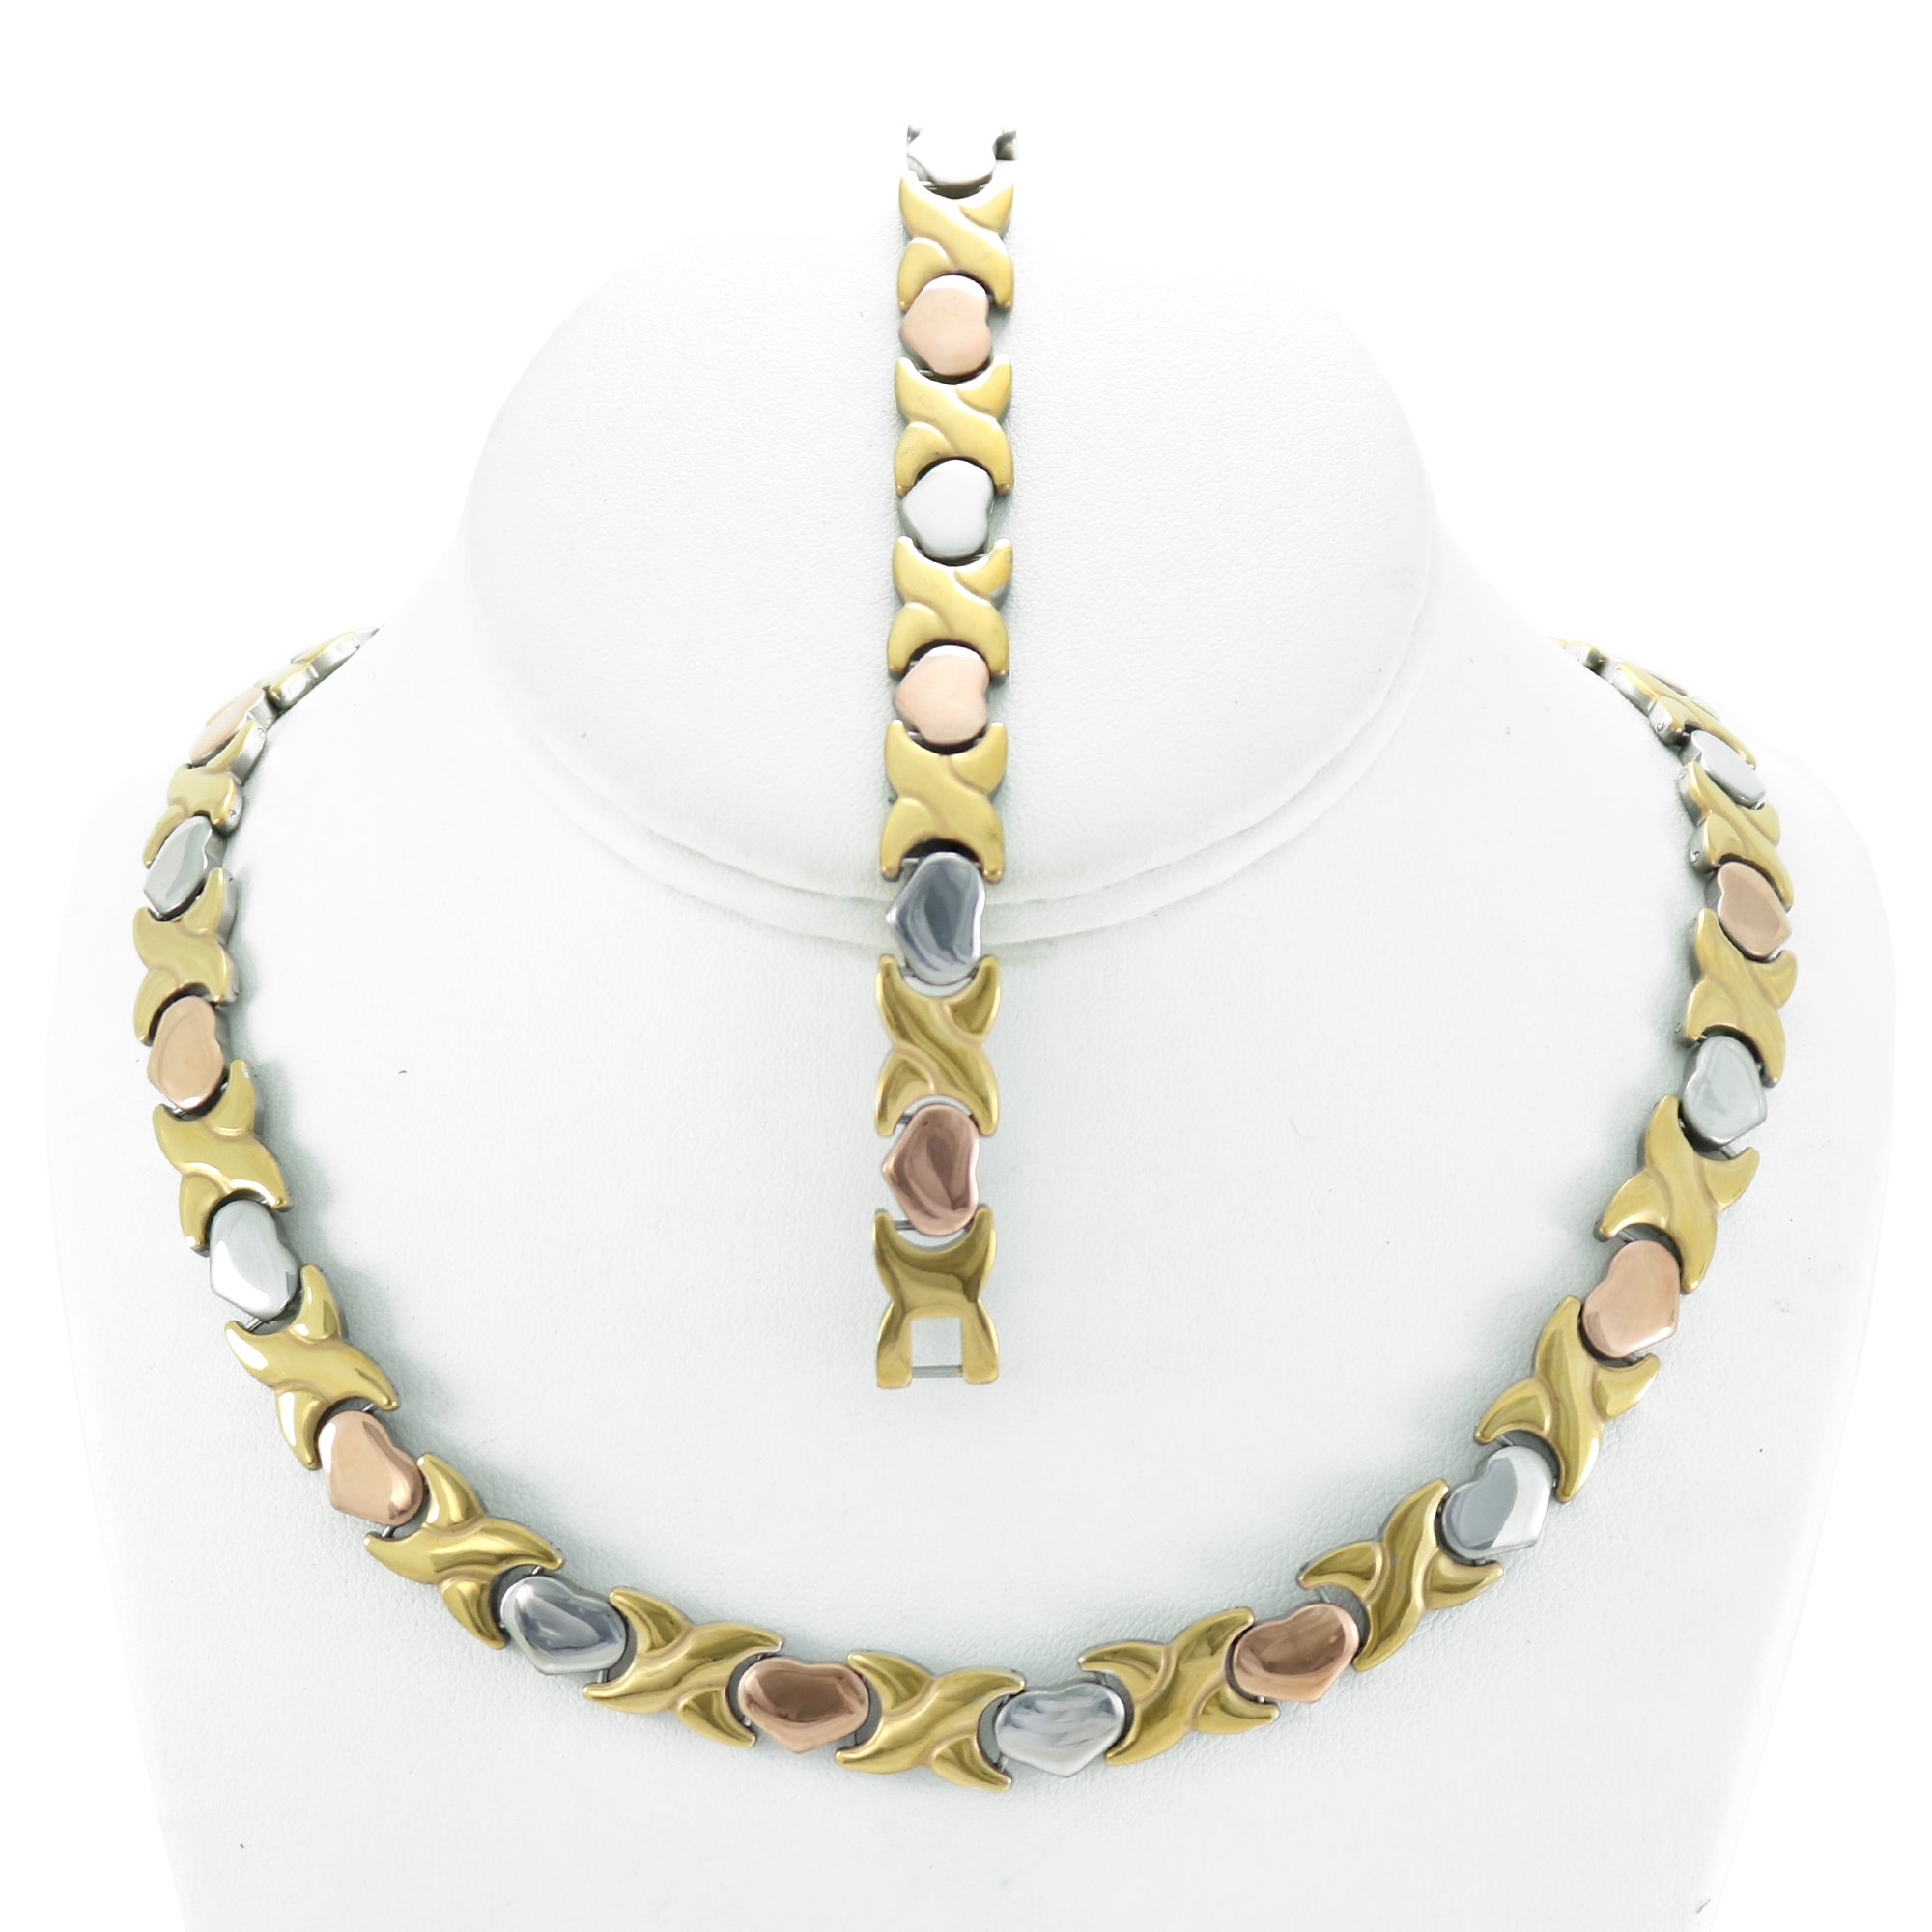 NEW 11mm Width Womens Three Tone (Gold Rose & Silver) XOXO Stampato Necklace and Bracelet Set 18/20'' LENGTH (Necklace Length 20'')